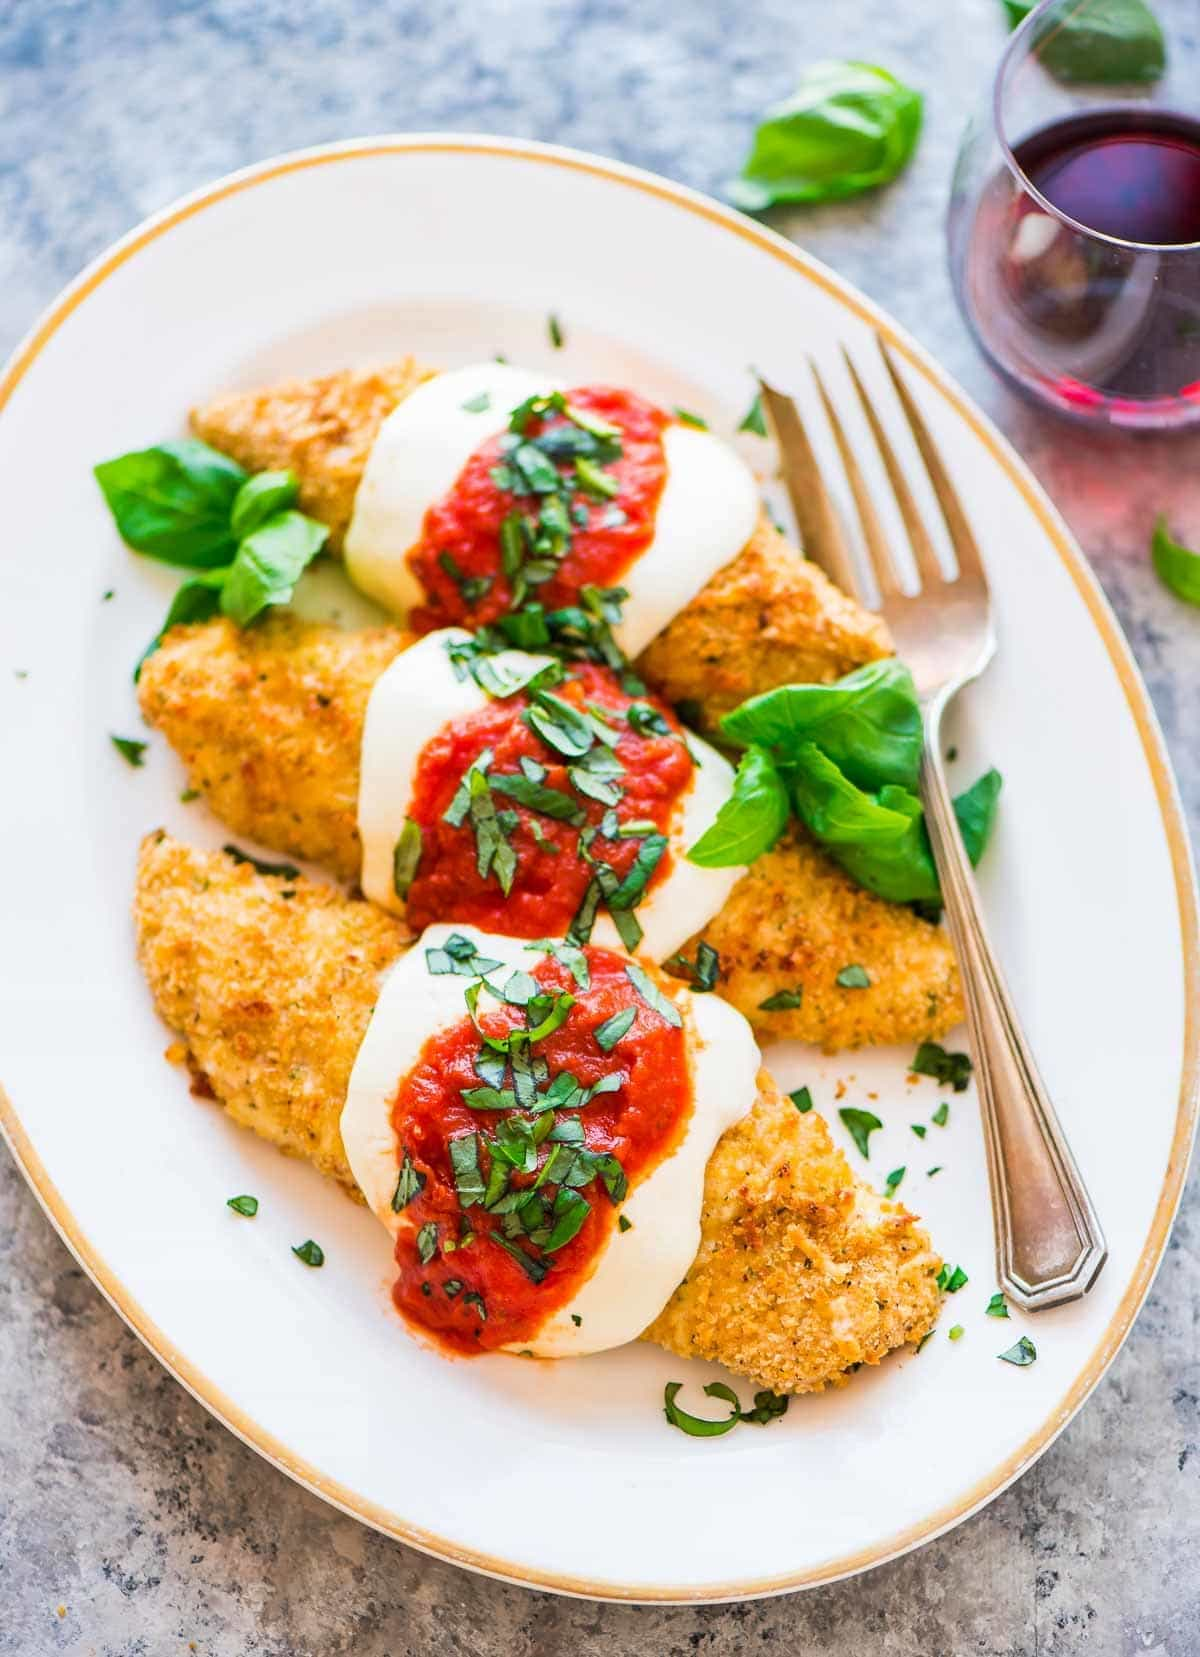 Healthy Baked Chicken Parmesan Crispy Juicy And Even Better Than A Restaurant